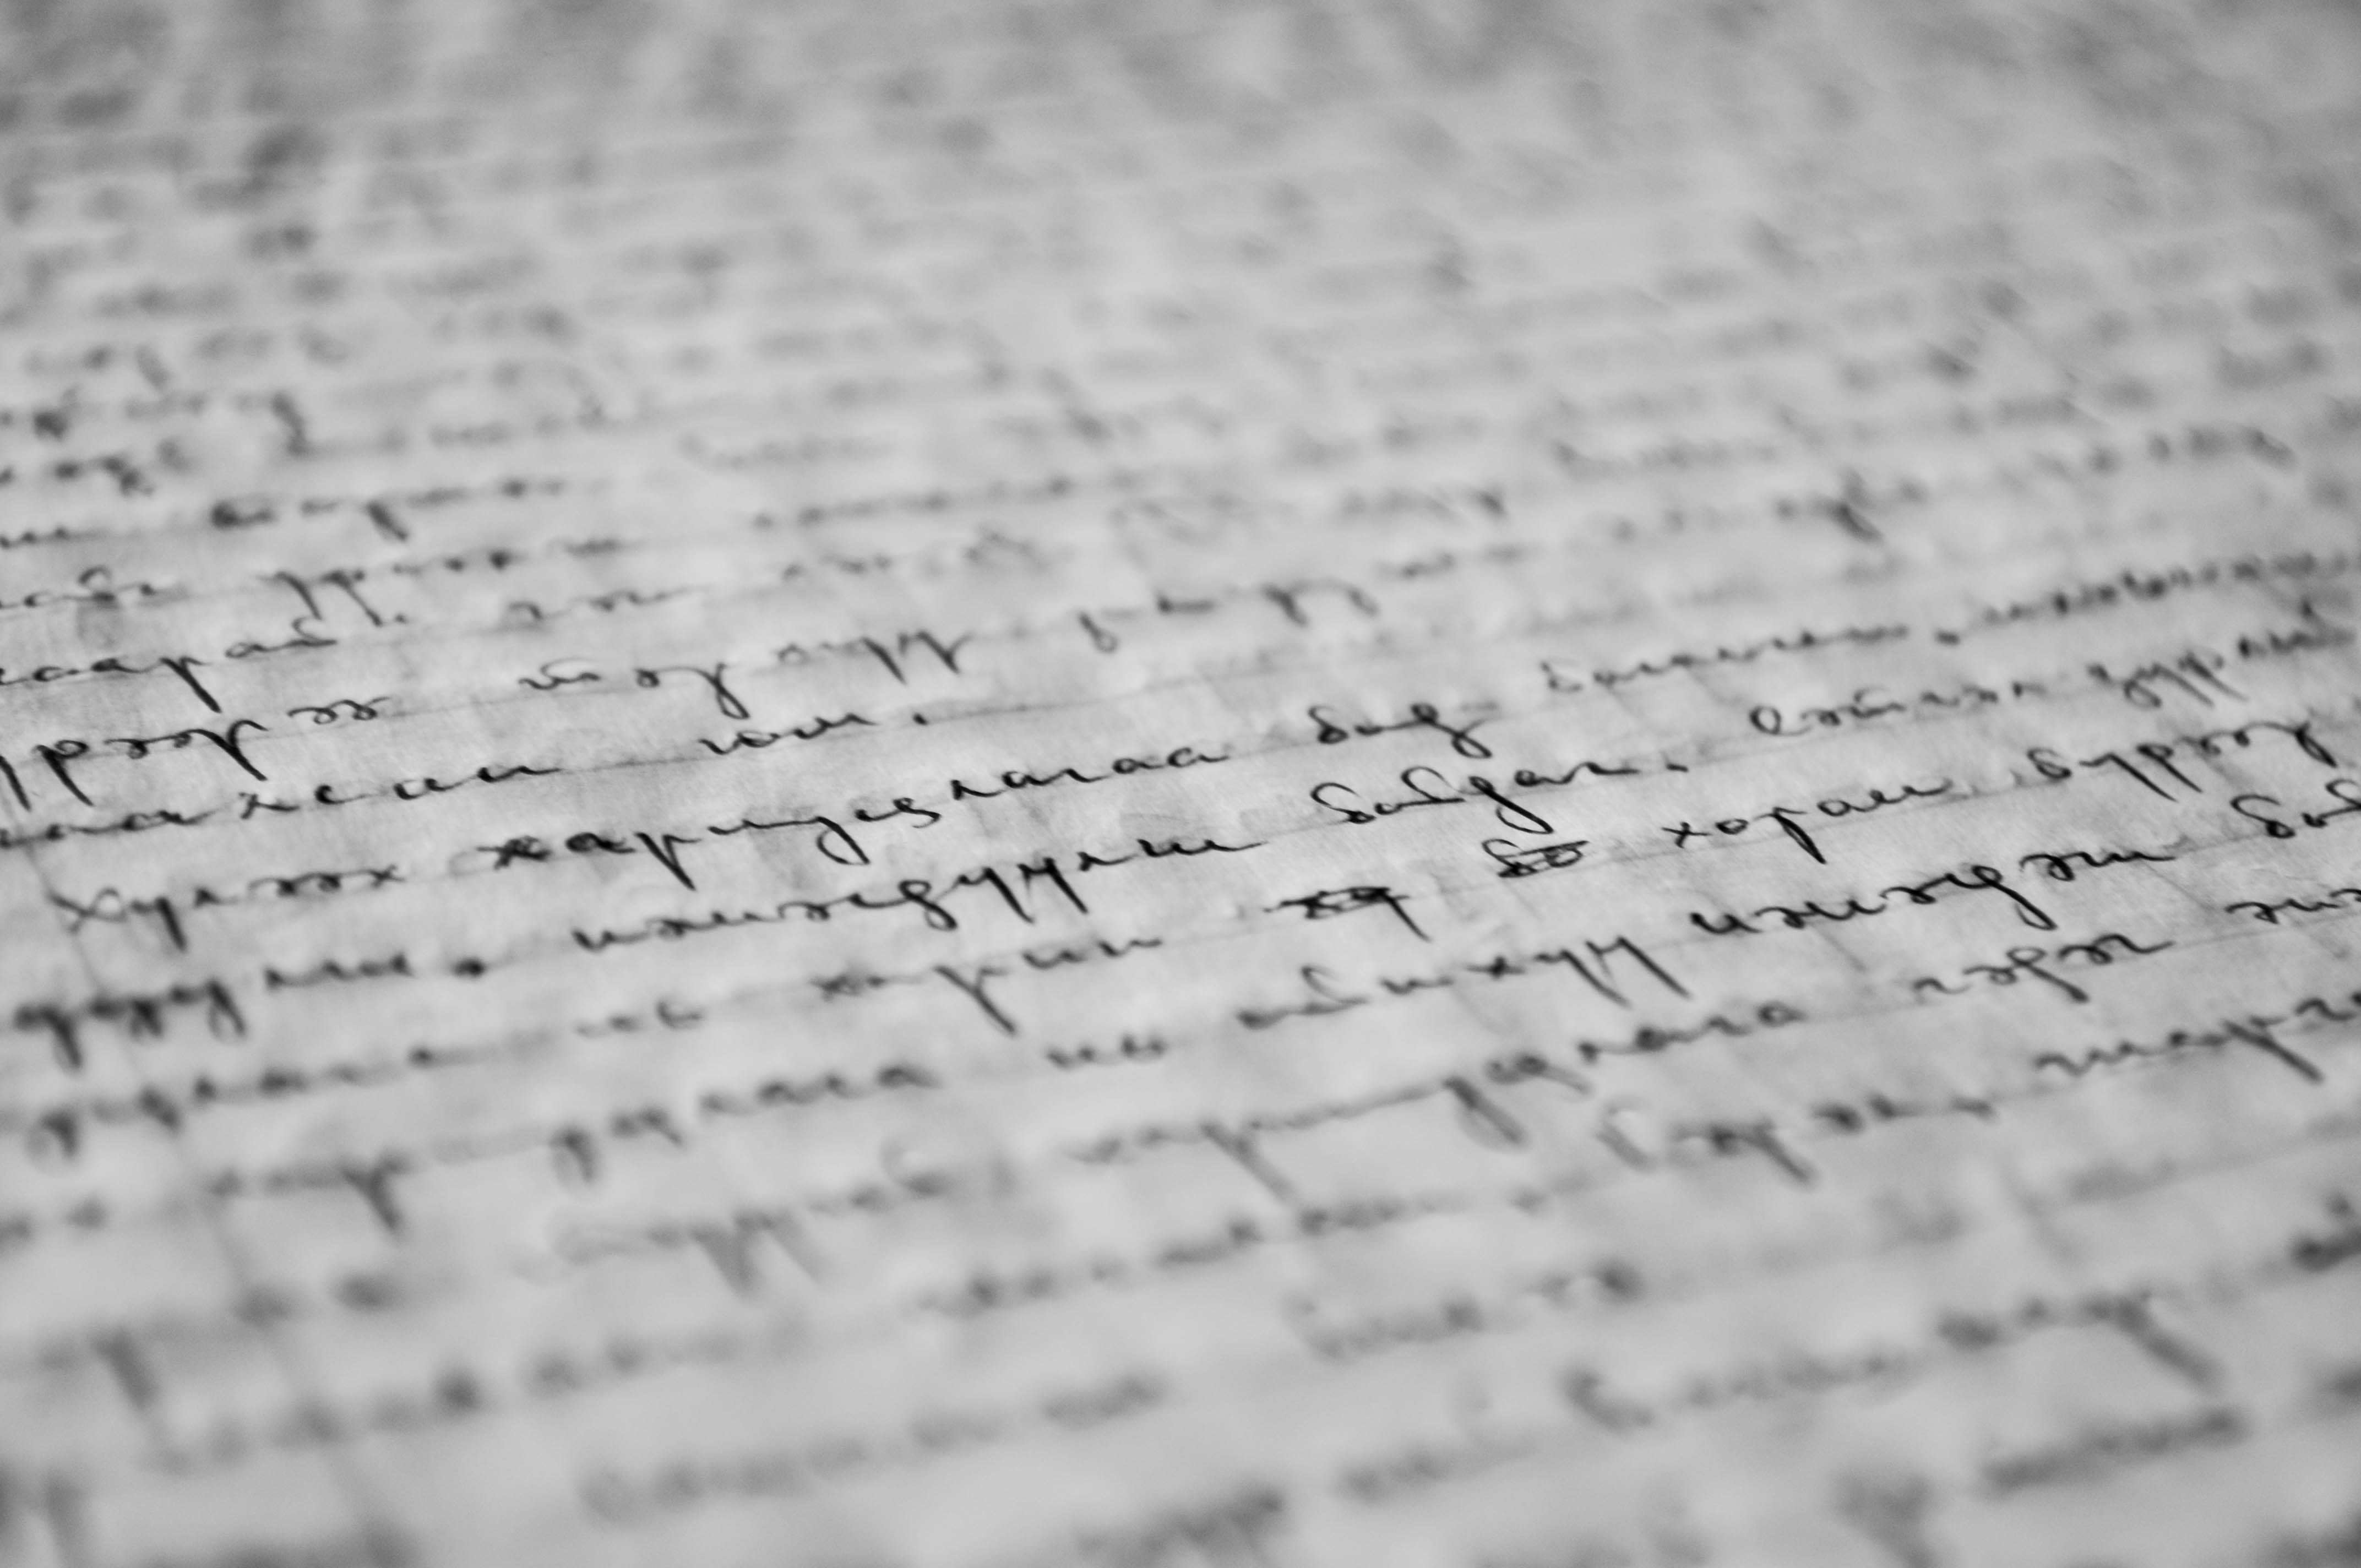 abstract black and white hand script on a blurred book